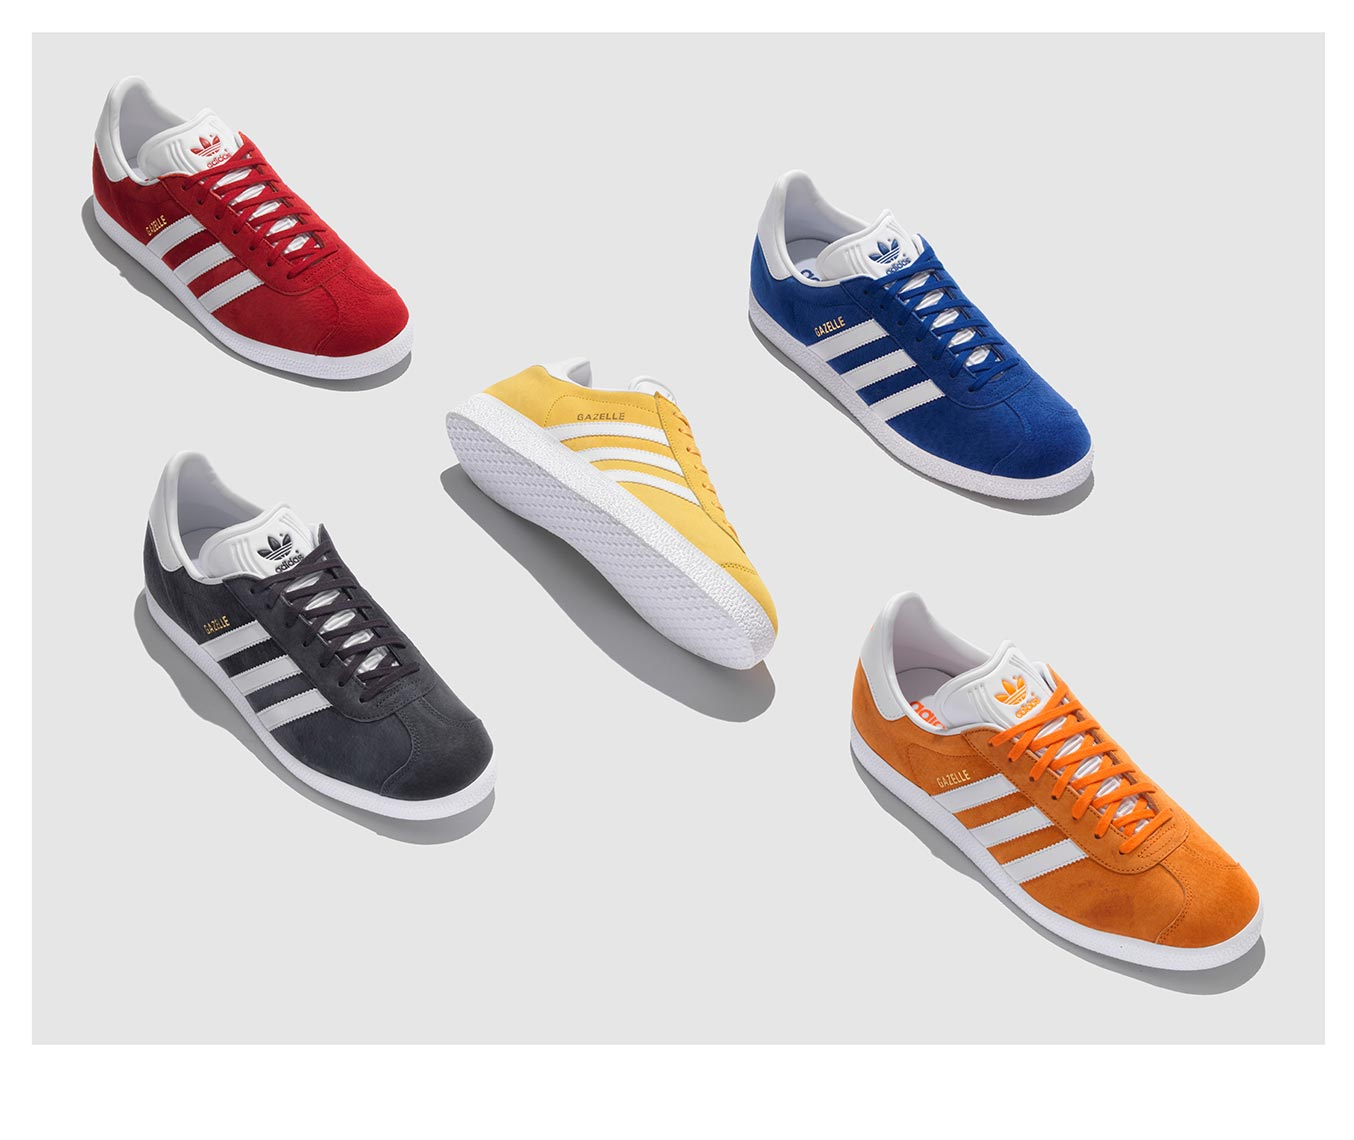 adidas gazelle colorful footwear pattern